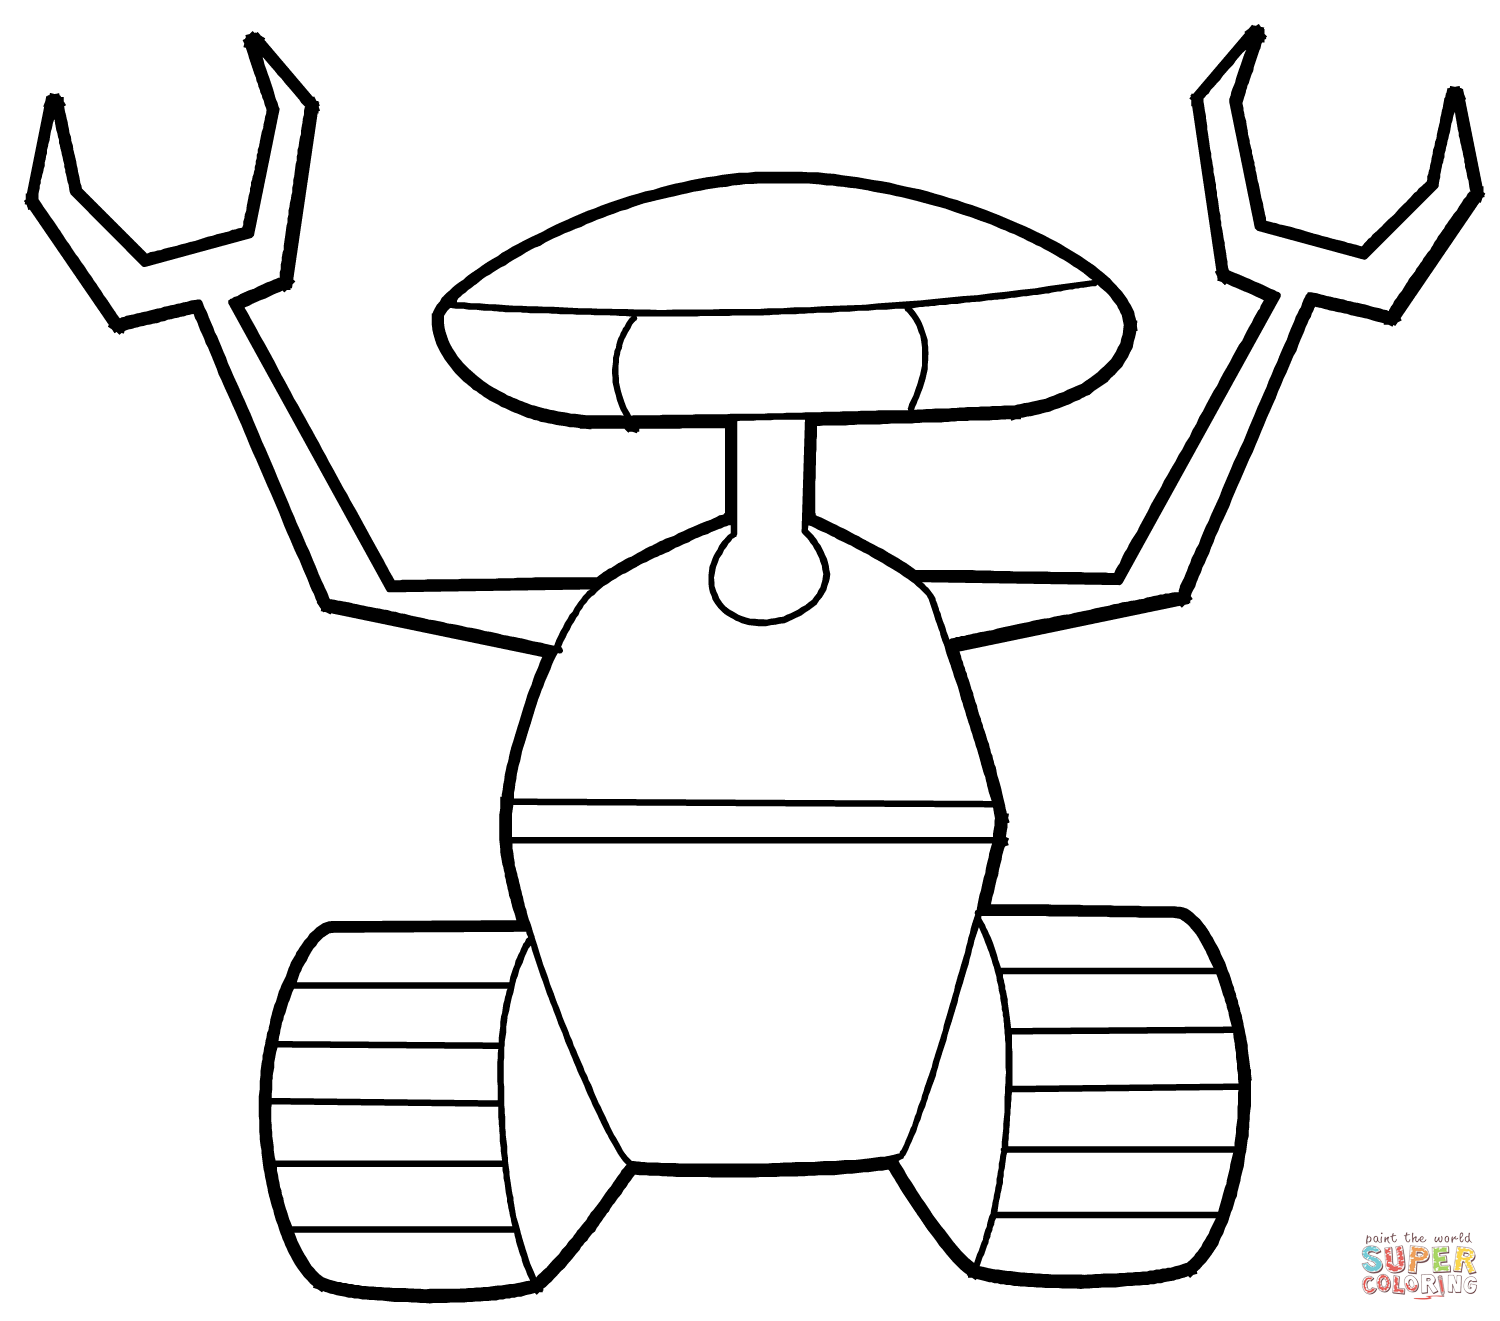 Lego Robot Coloring Pages on Batman Dot To